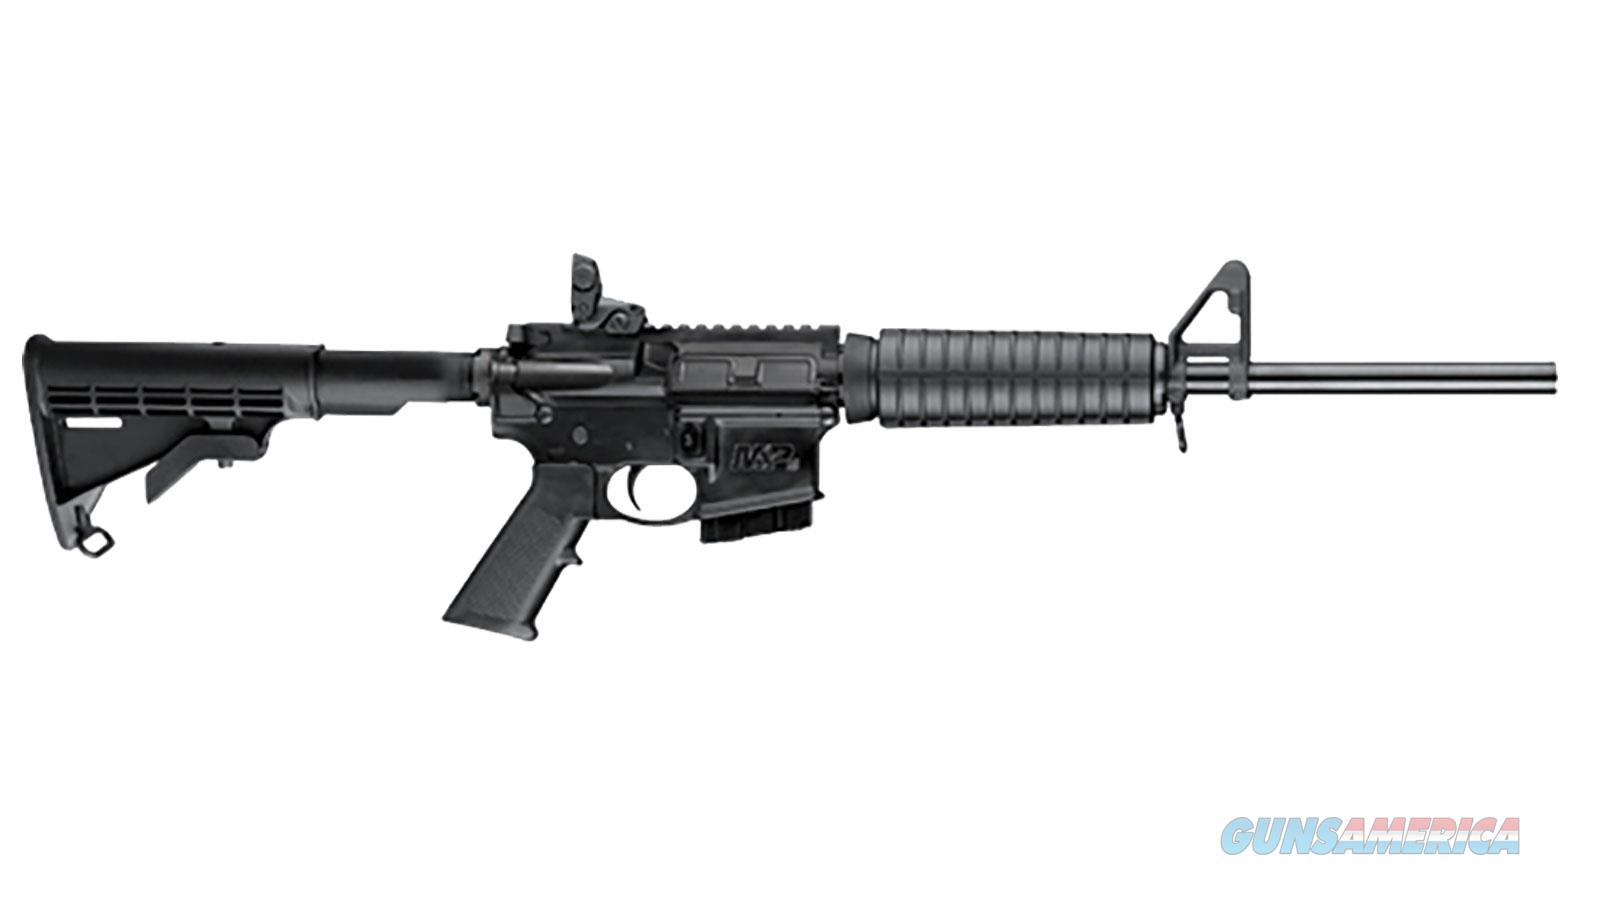 "SMITH & WESSON M&P 15 SPORT II 5.56 16"" 10203  Guns > Rifles > Smith & Wesson Rifles > M&P"